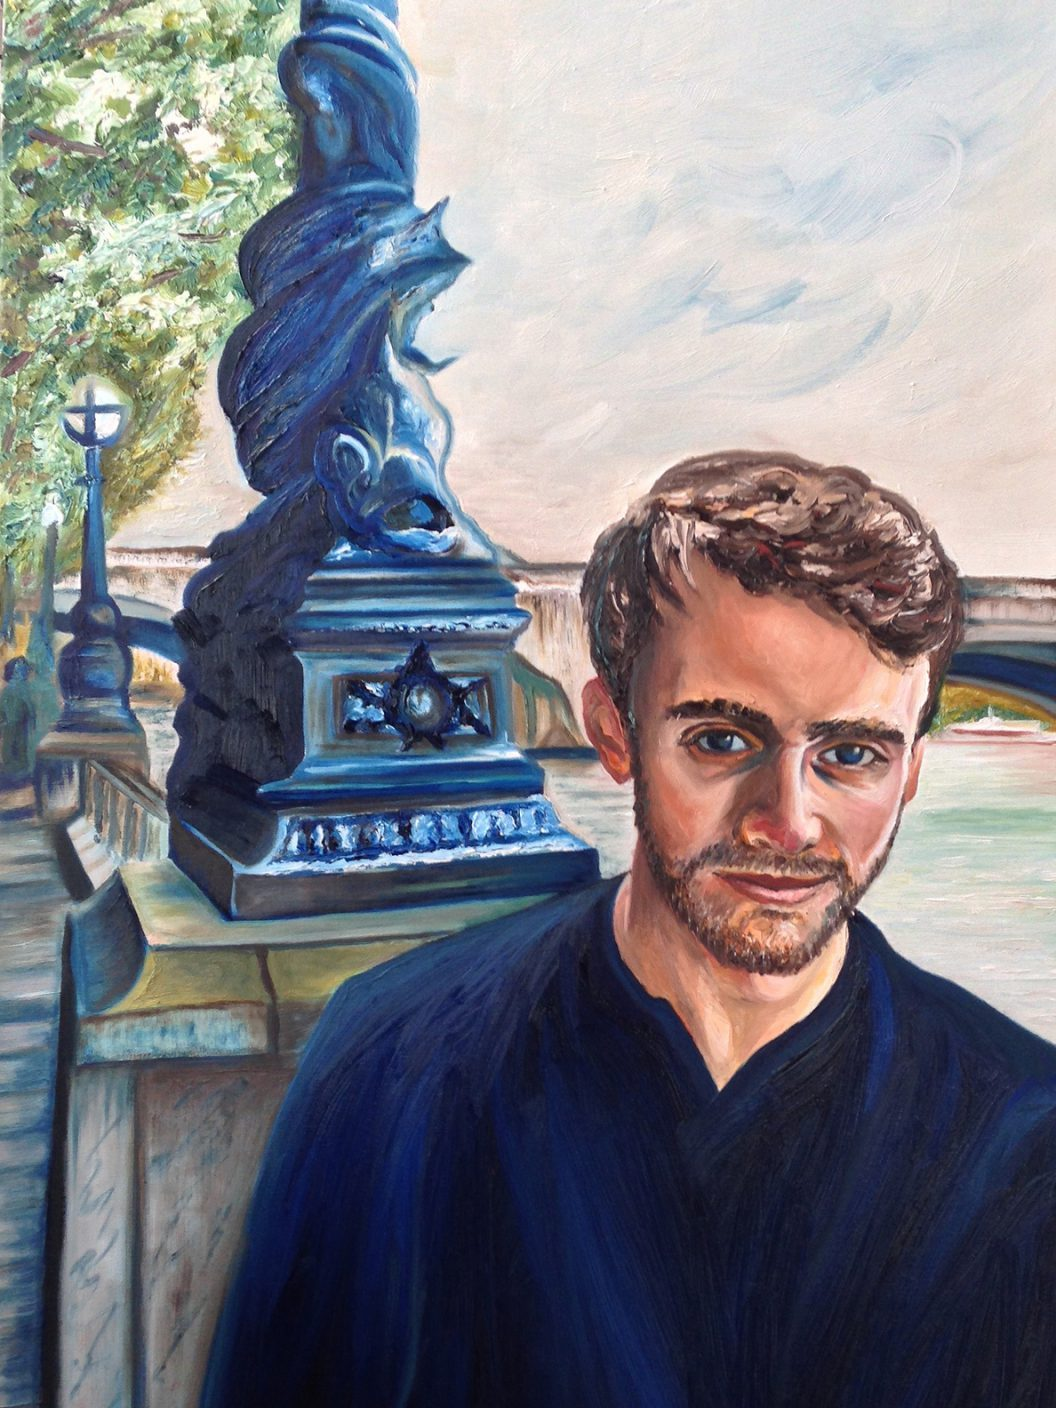 Nick | Oil on canvas | 60 x 90 cm | 2015